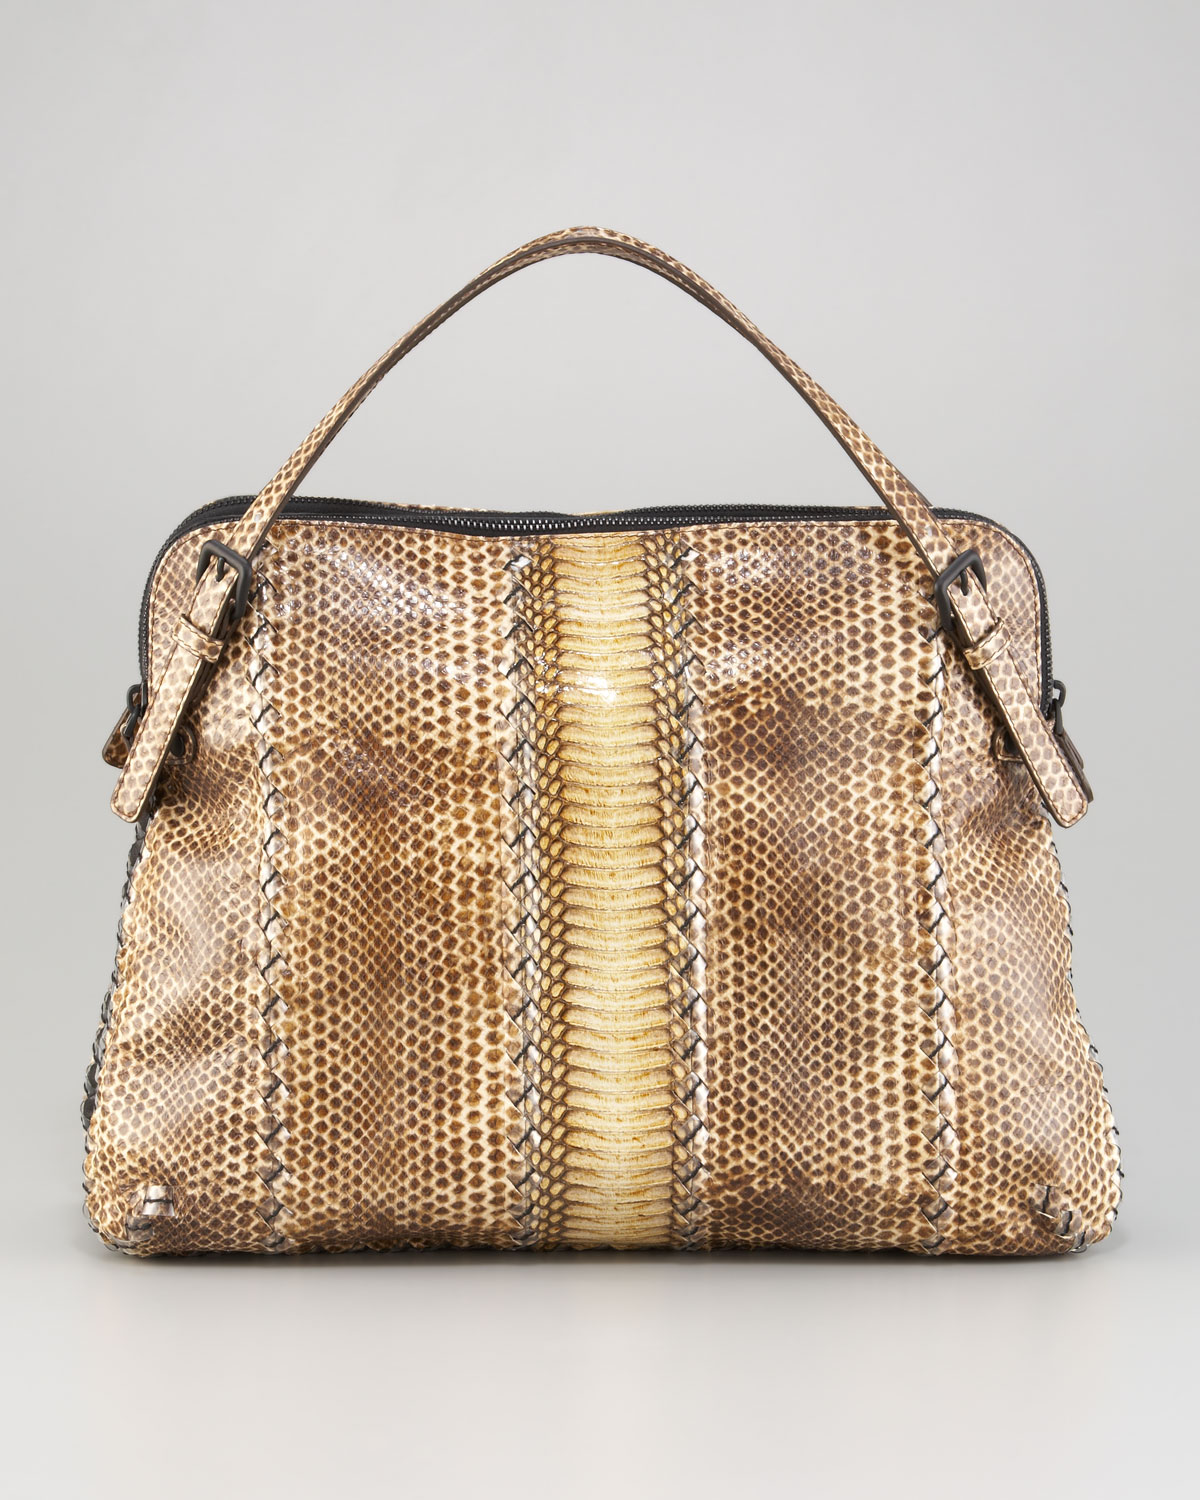 86340918e295 Lyst - Bottega Veneta Snakeskin Top-Handle Bag in Natural